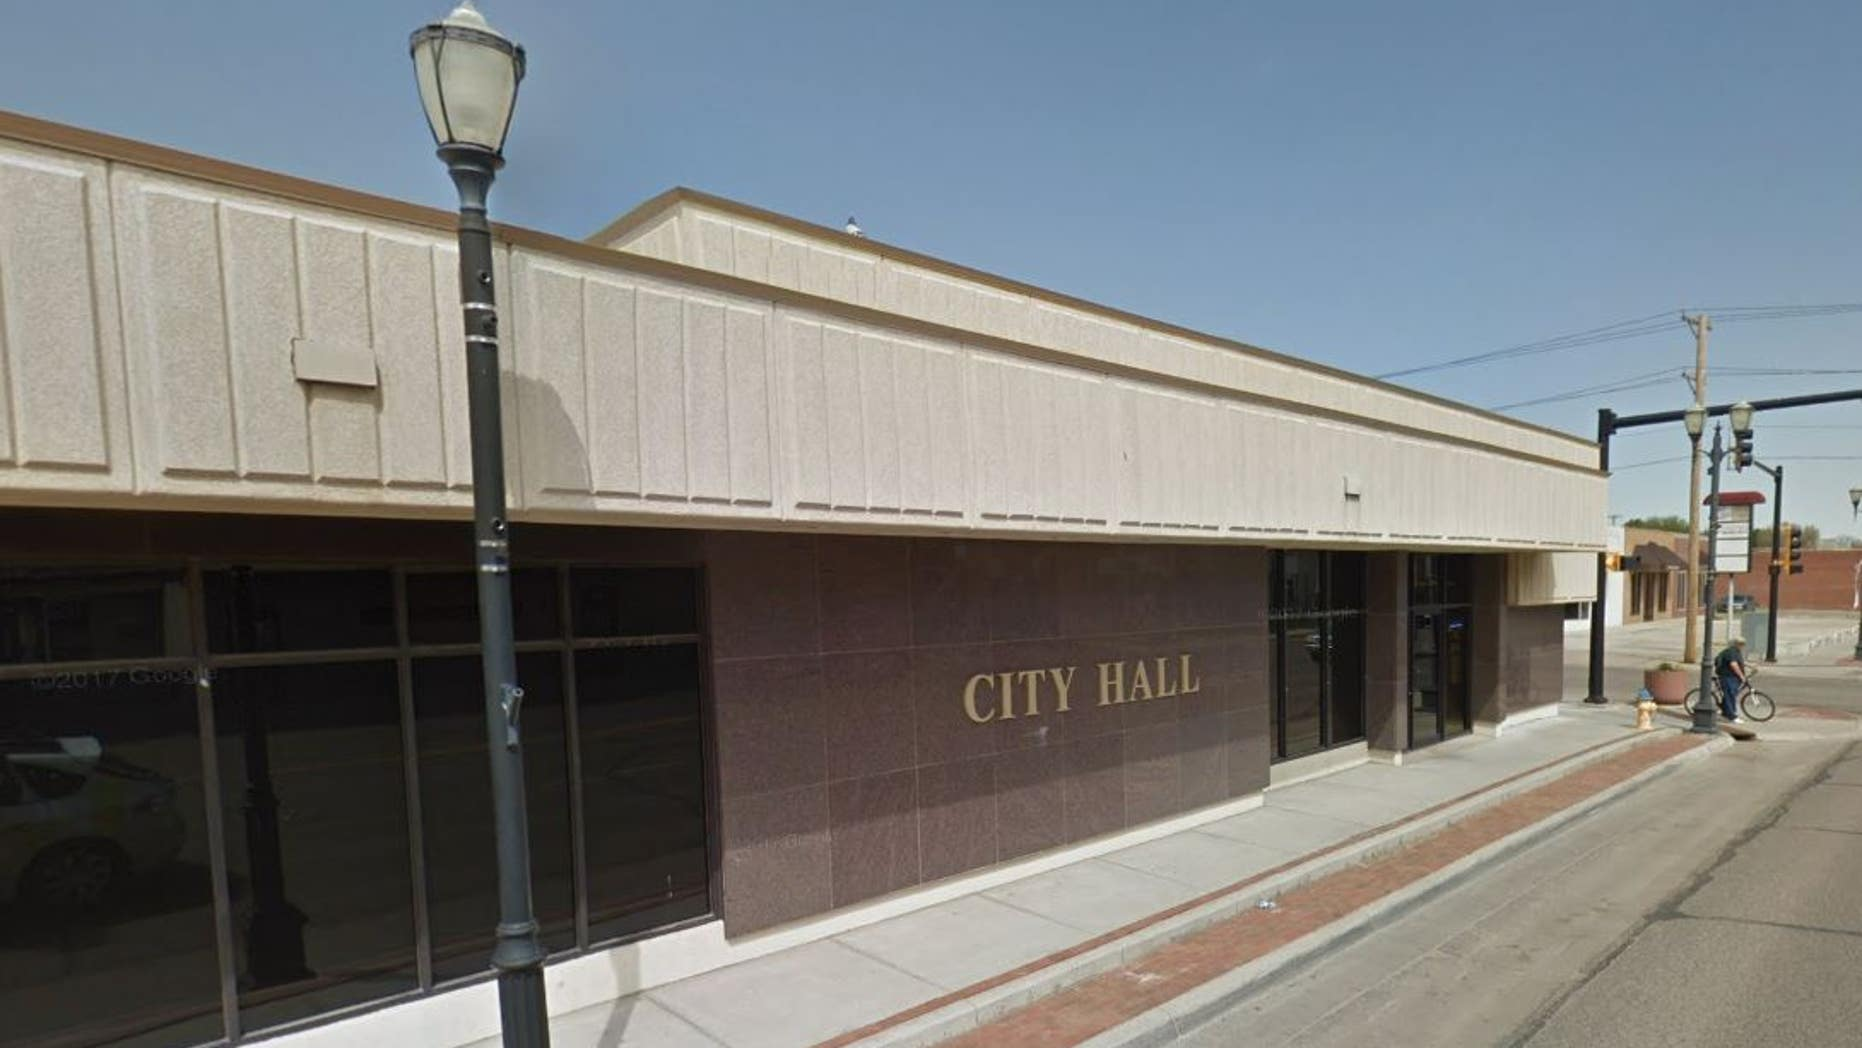 Outside city hall in Liberal, Kansas.